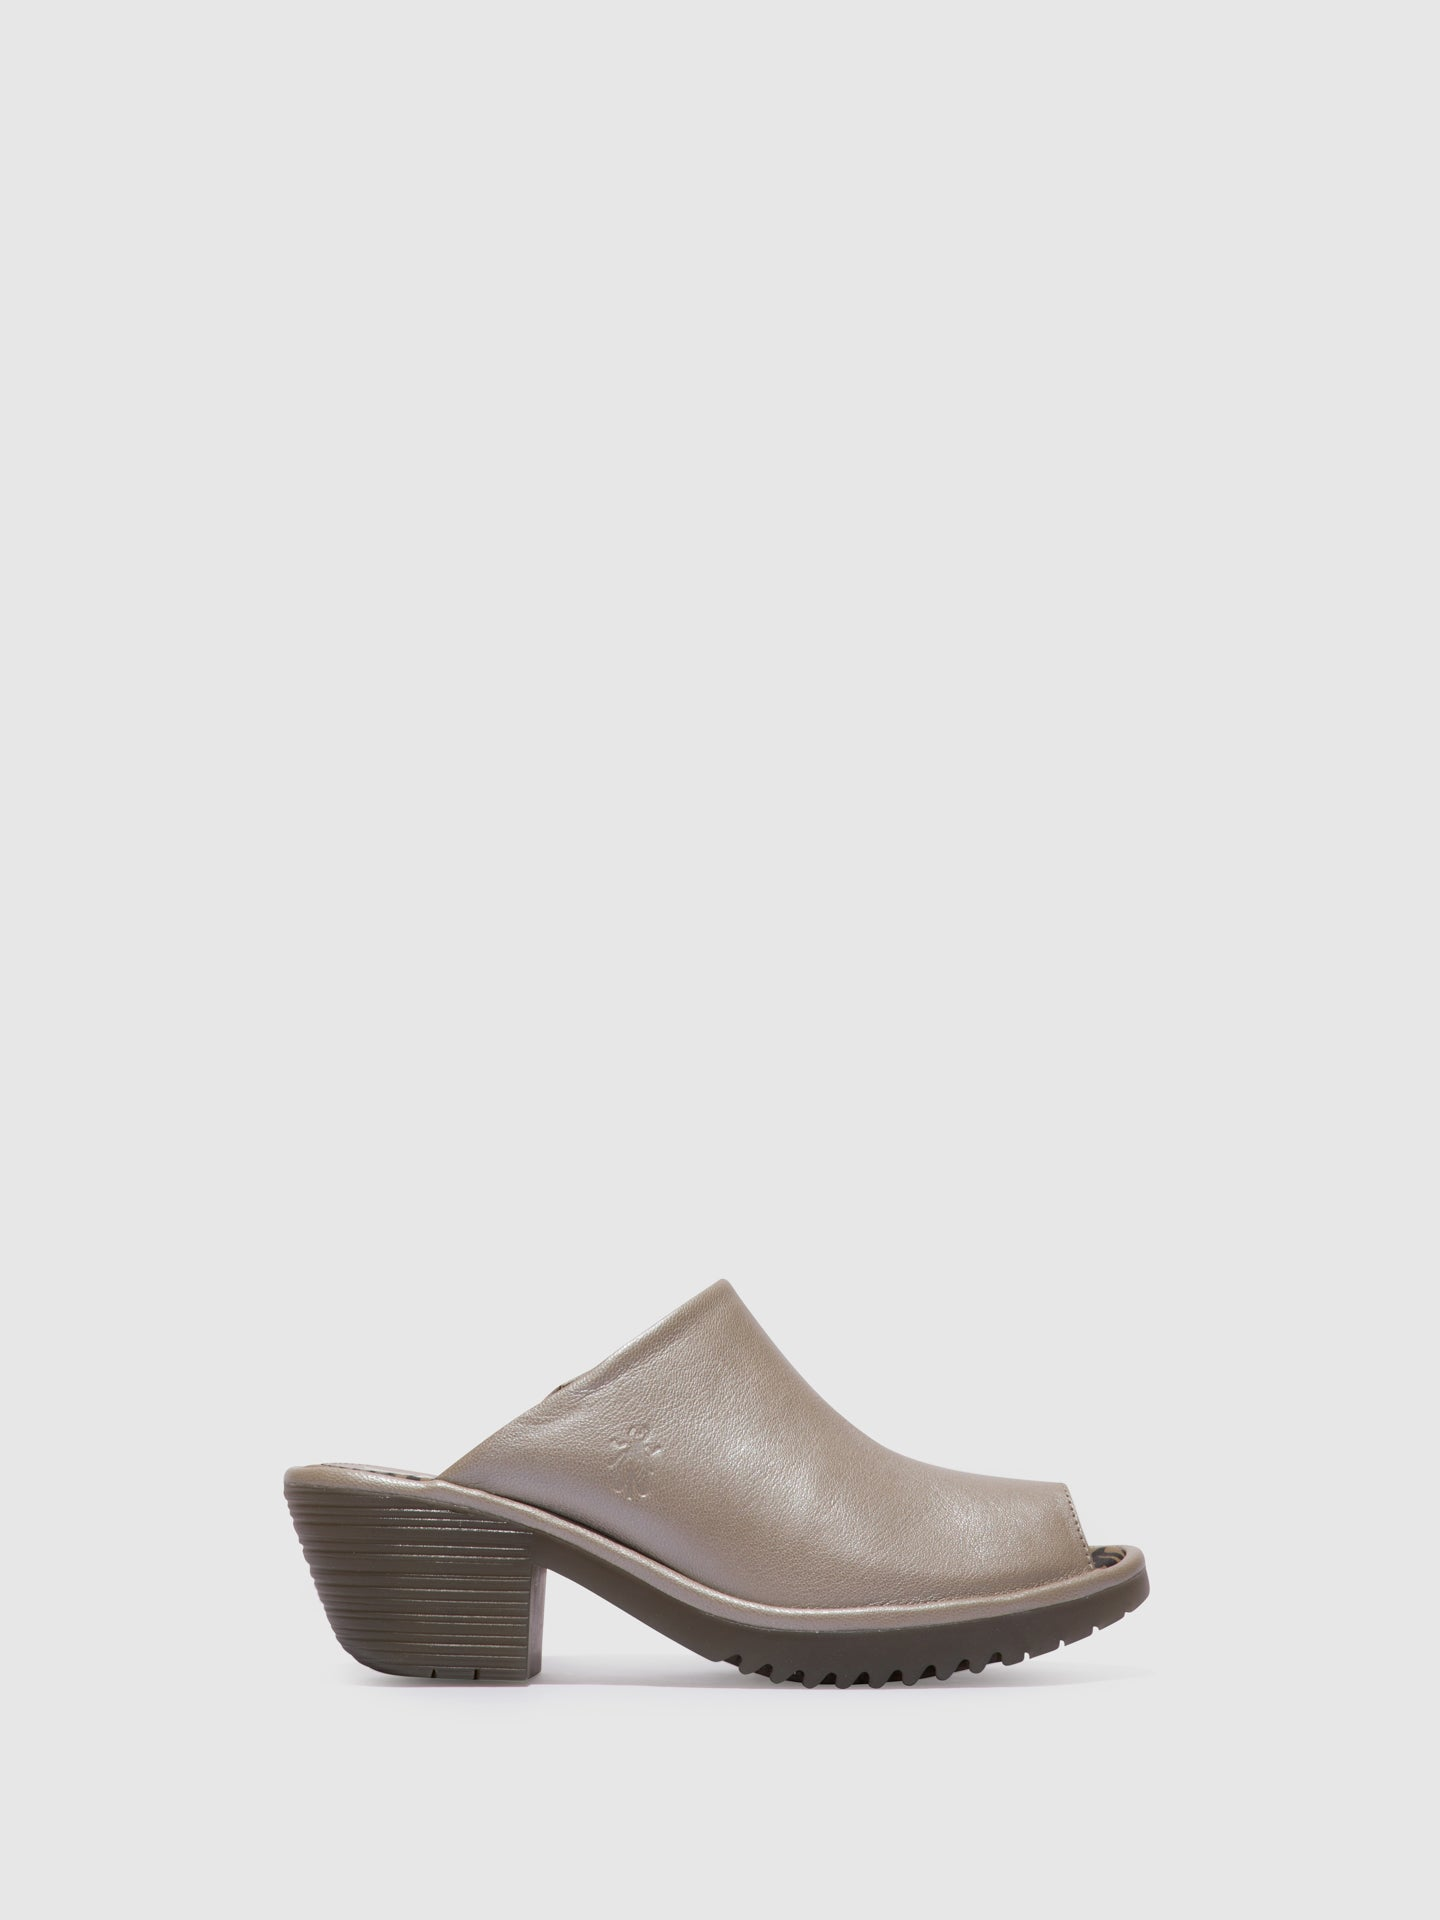 Fly London Silver Open Toe Mules